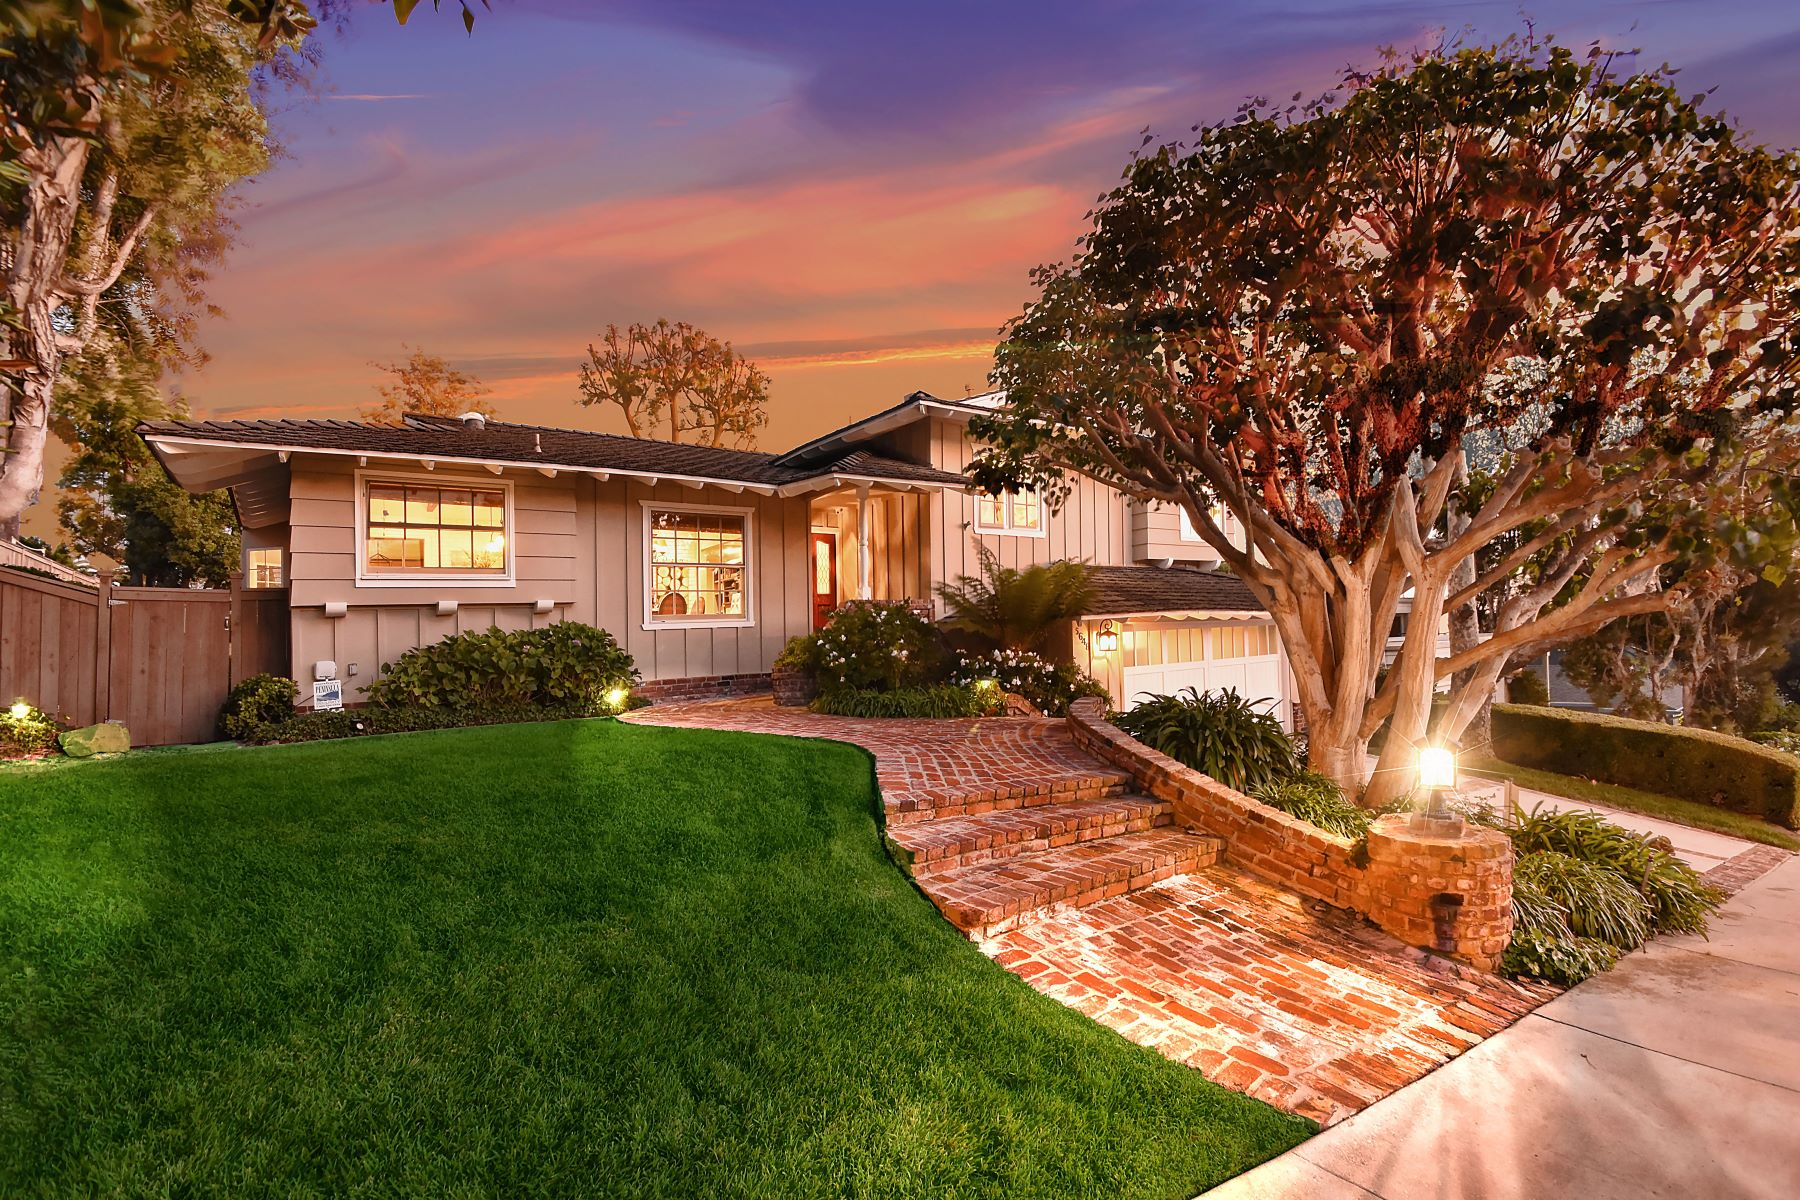 Single Family Homes for Sale at 5648 Whitecliff Drive, Rancho Palos Verdes, CA 90275 5648 Whitecliff Drive Rancho Palos Verdes, California 90275 United States